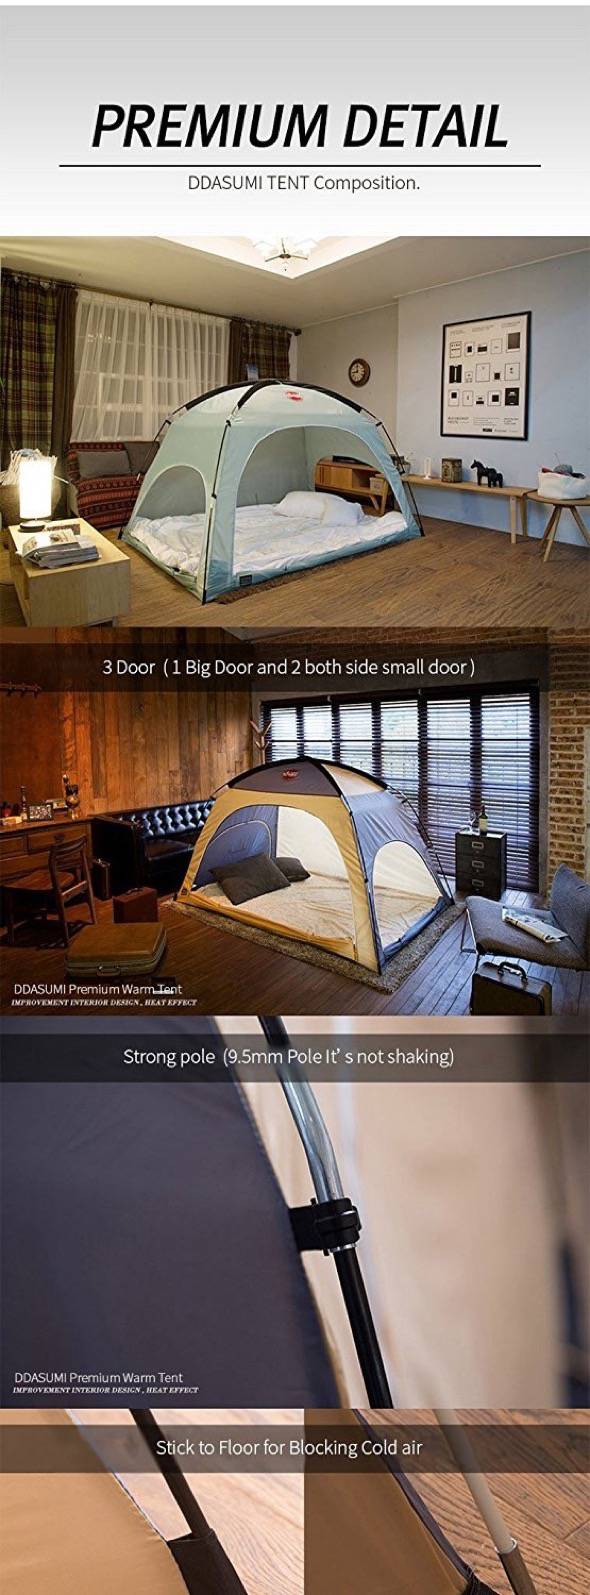 DDASUMI Bed Tent Colors